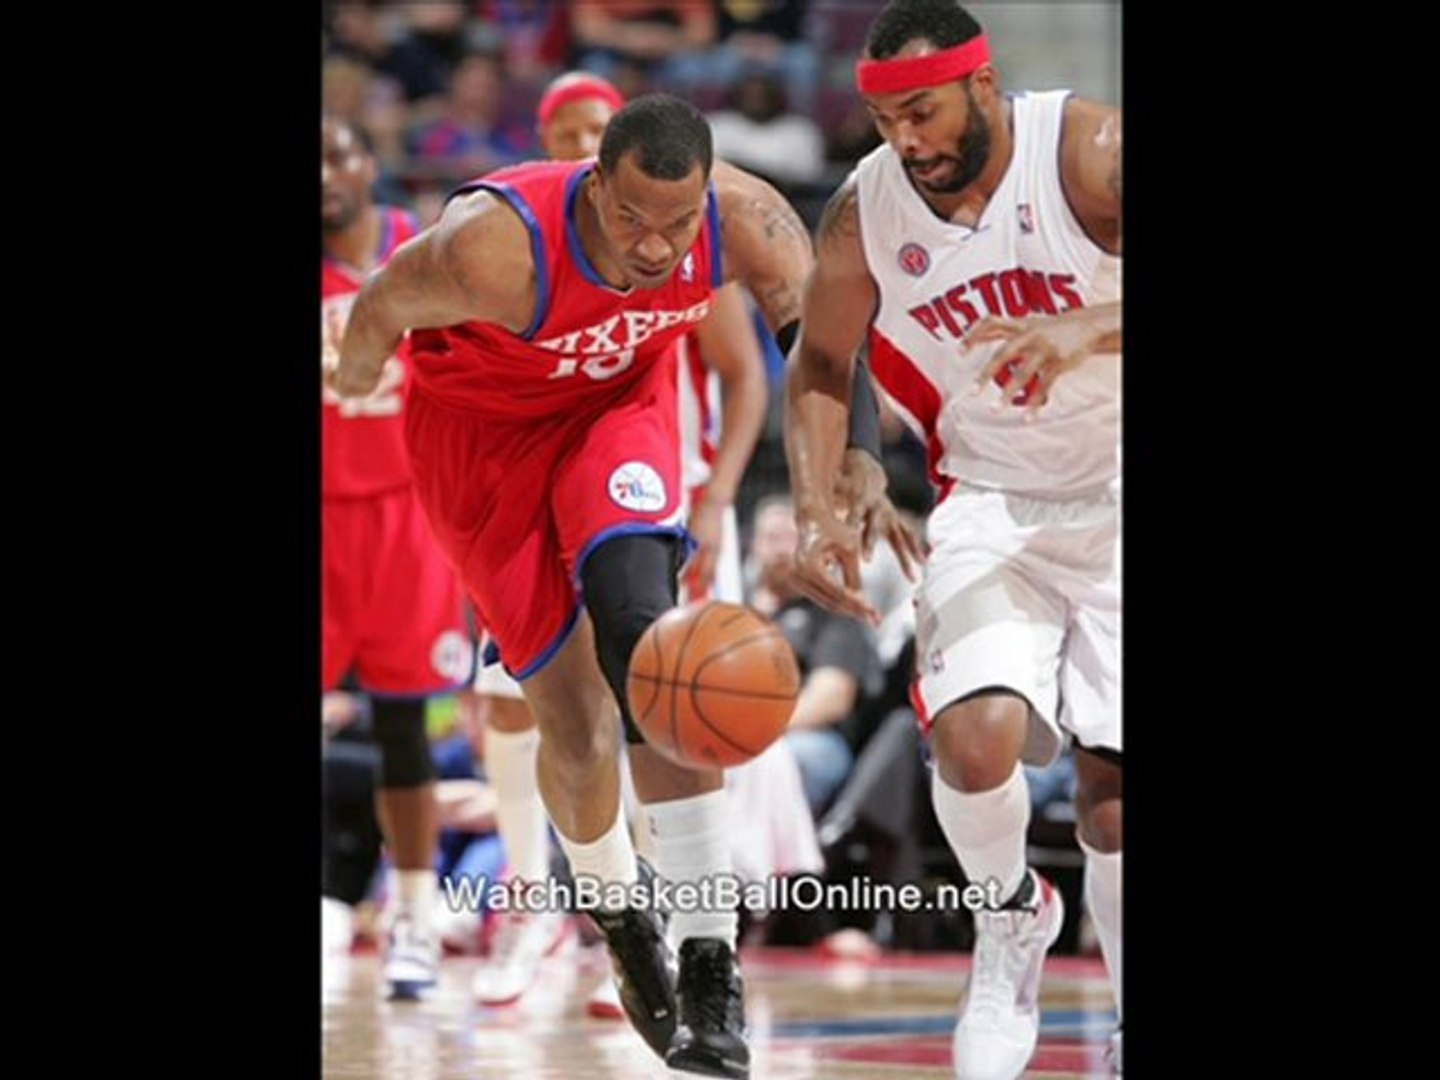 watch Basketball Pacers   Pacers  vs 76ers online streaming